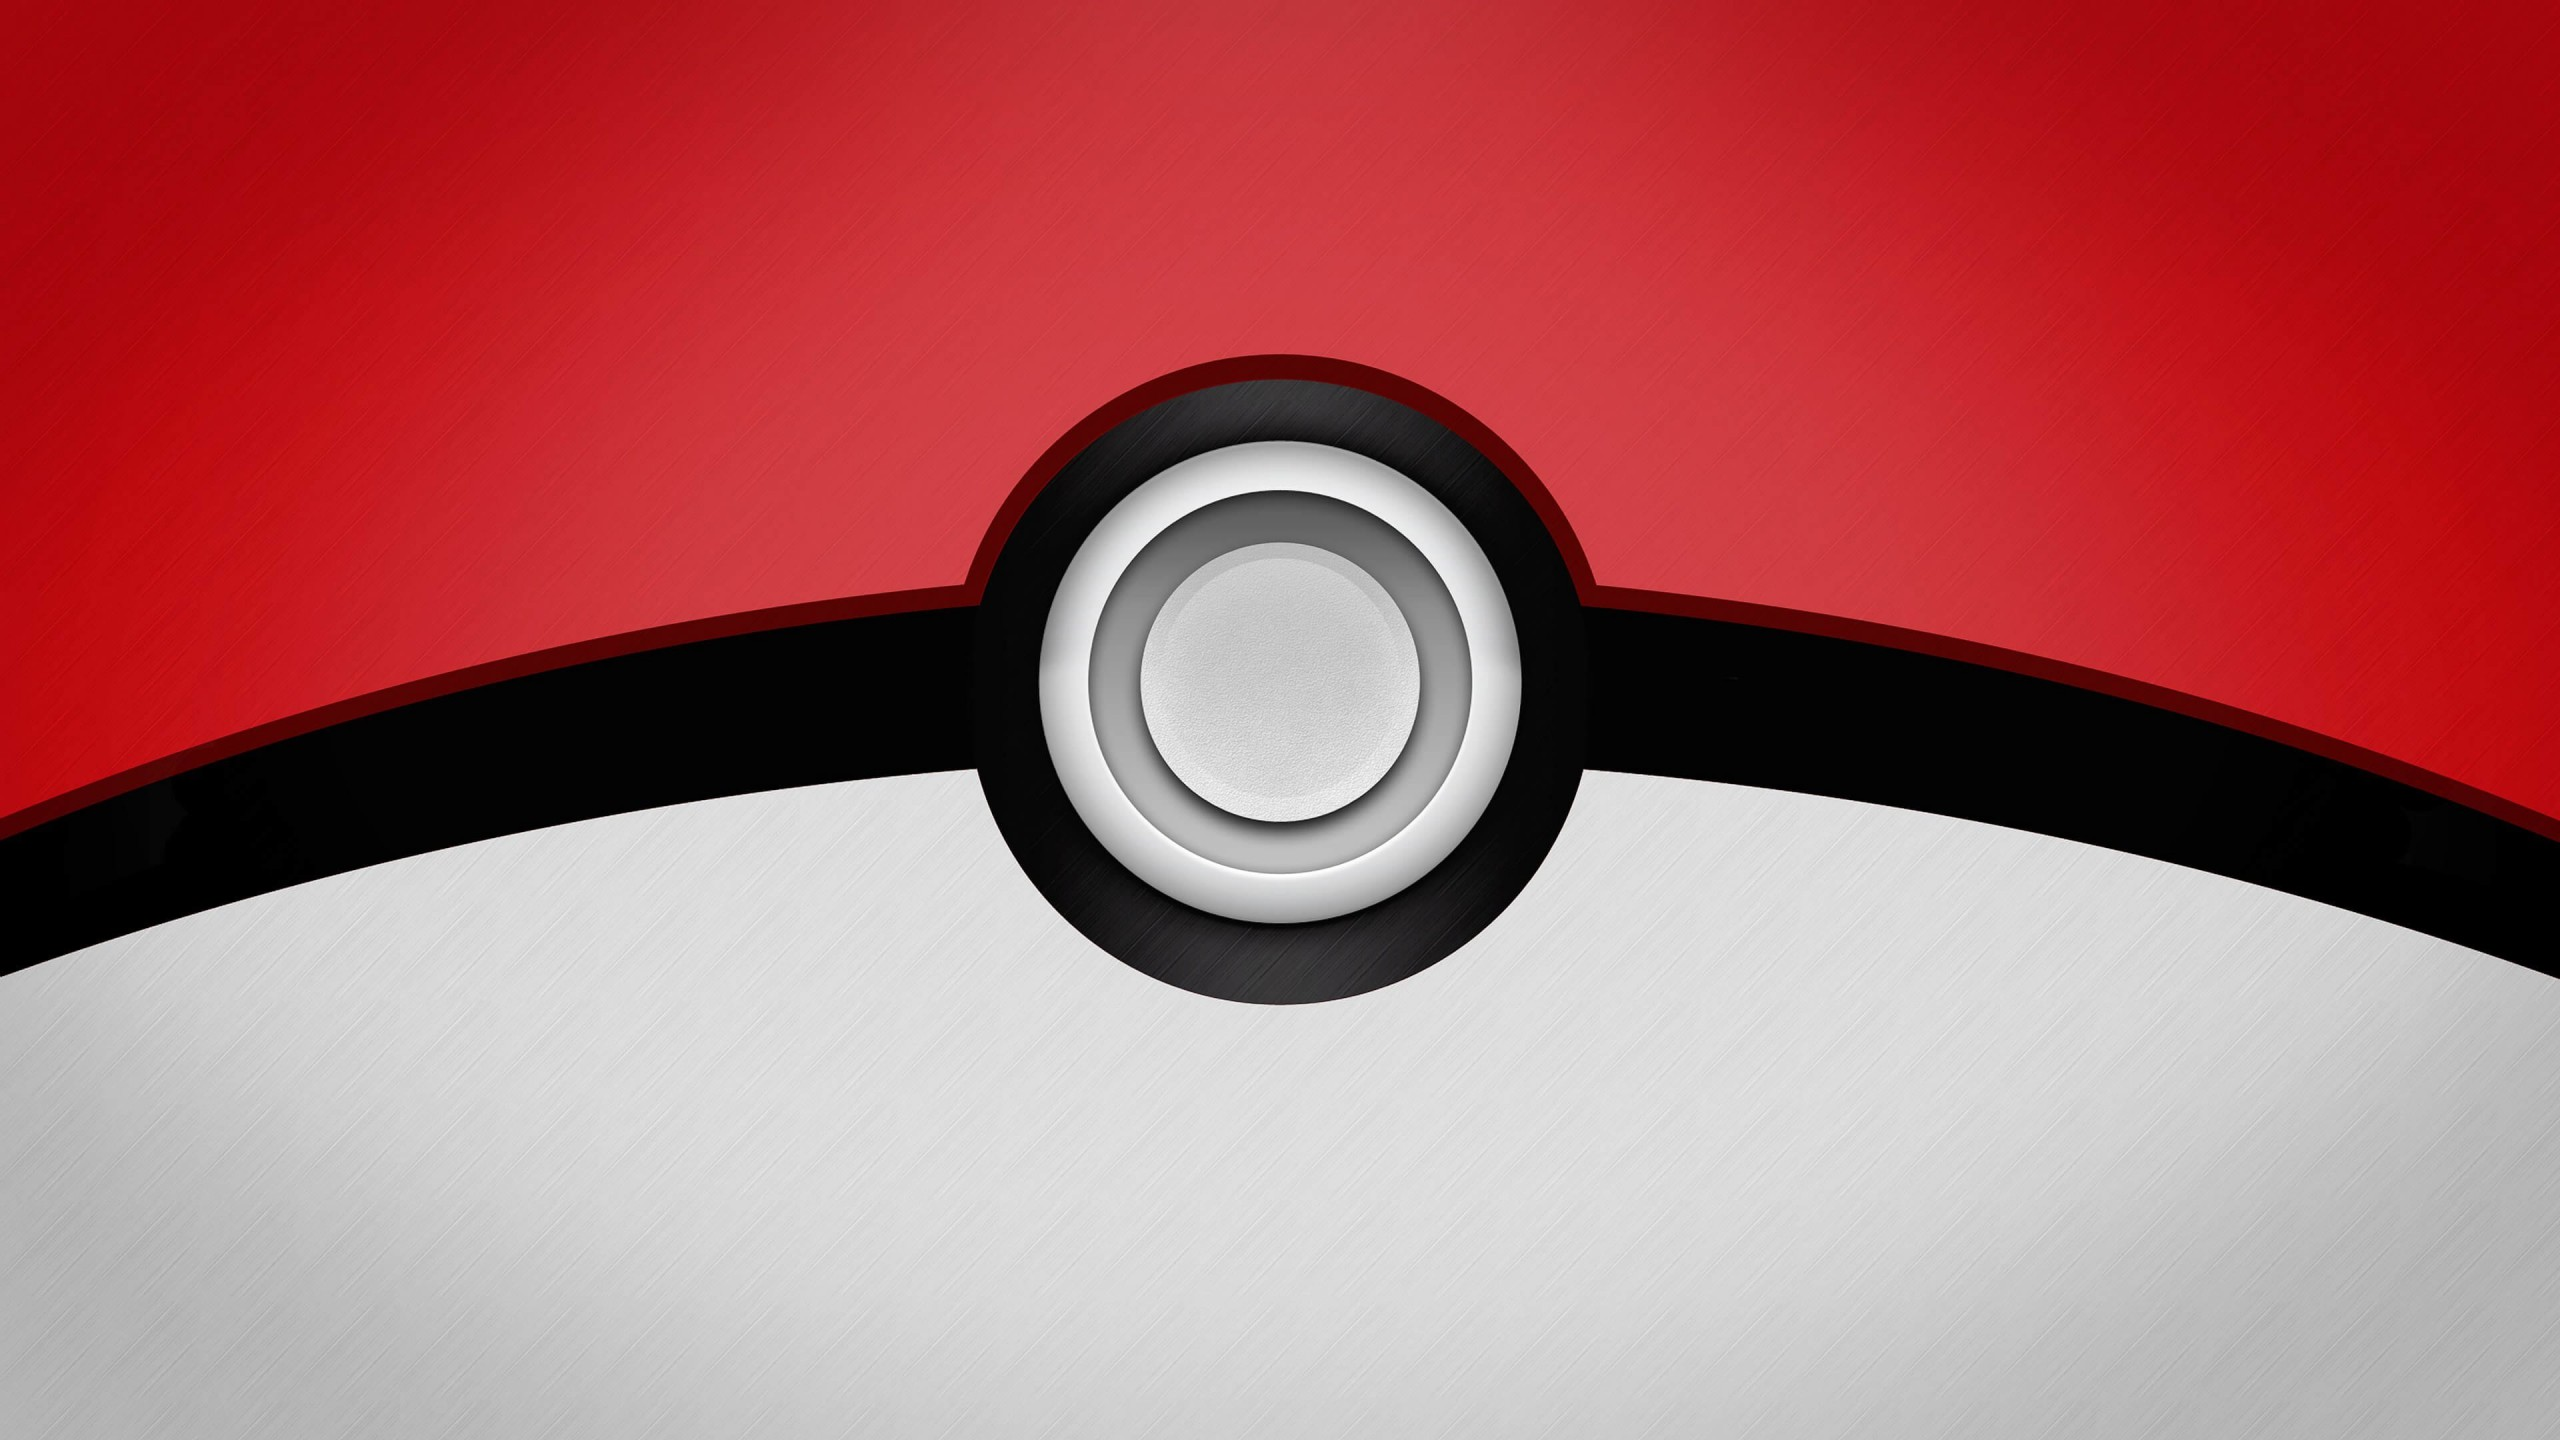 Pokeball Wallpaper for Social Media YouTube Channel Art